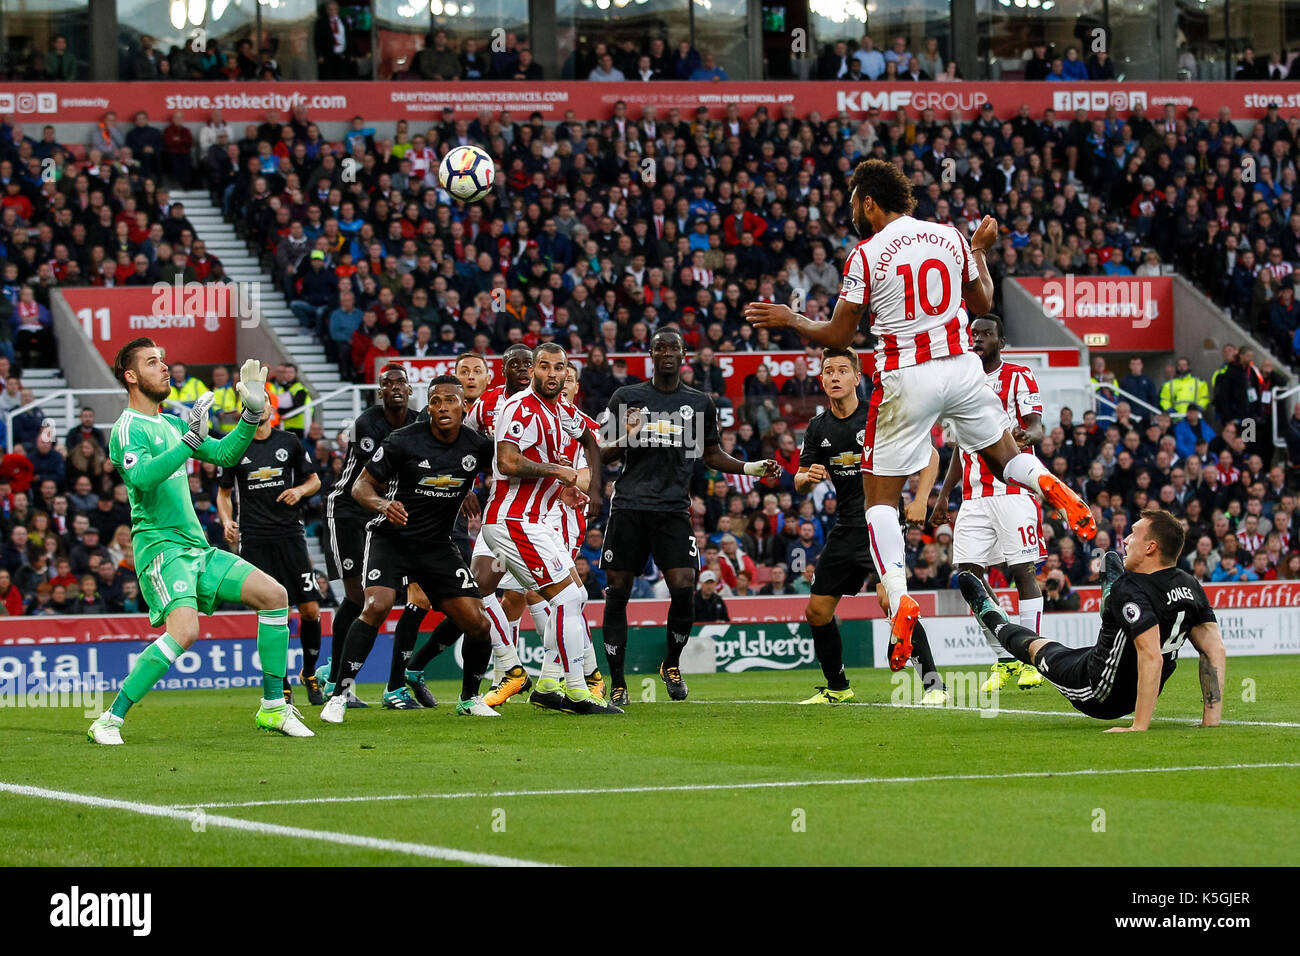 Stoke-on-Trent, UK 09th Sep, 2017 Eric Maxim Choupo-Moting of Stoke City scores his side's second goal to equalise and make the score 2-2 during the Premier League match between Stoke City and Manchester United at Bet365 Stadium on September 9th 2017 in Stoke-on-Trent, England. (Photo by Daniel Chesterton/phcimages.com) Credit: PHC Images/Alamy Live News - Stock Image